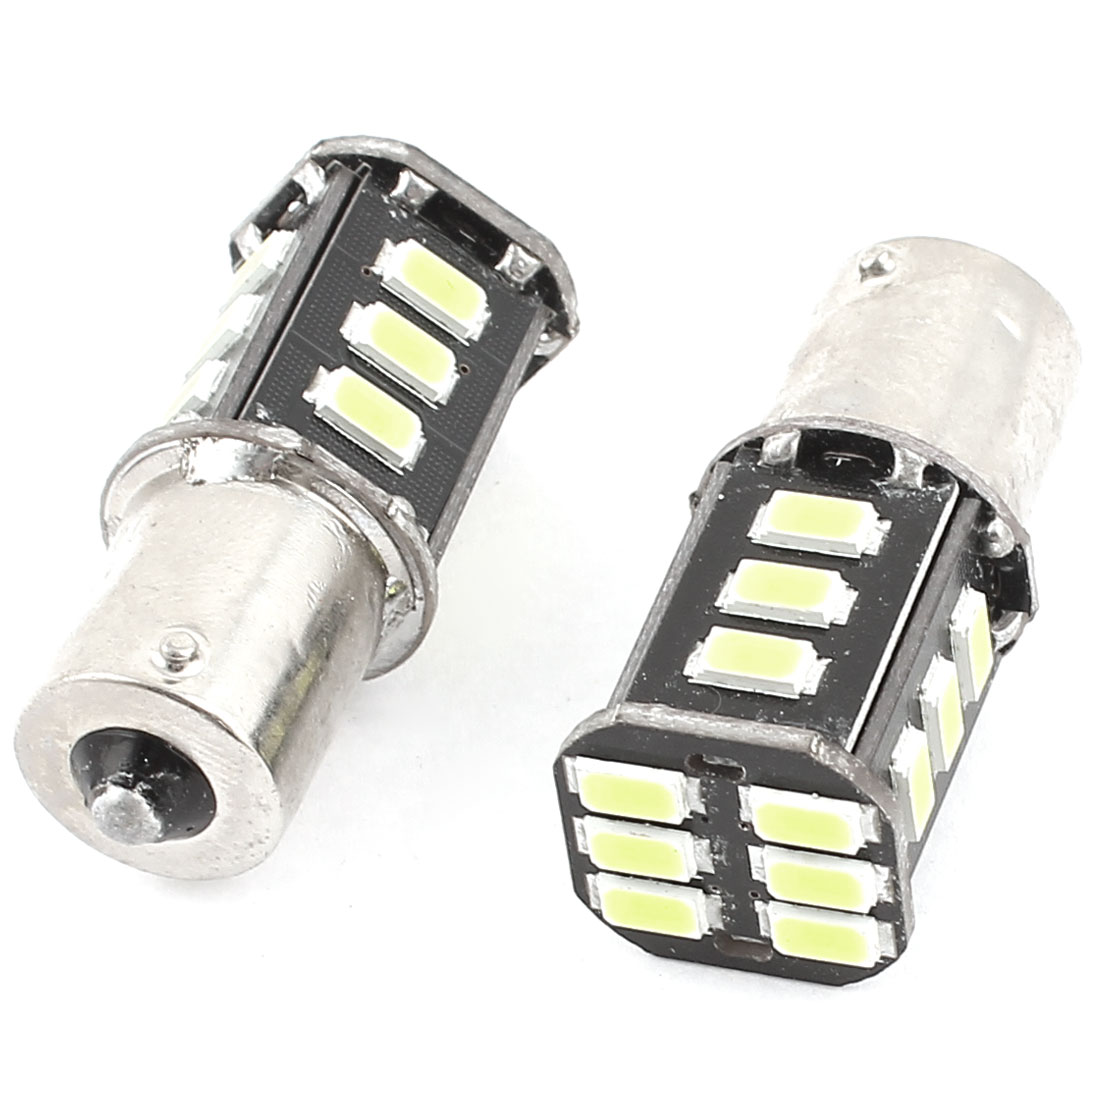 BA15S 1156 5630 SMD 18 LED Car Corner Tail Turn Signal Light White 1159 1141 2 Pcs